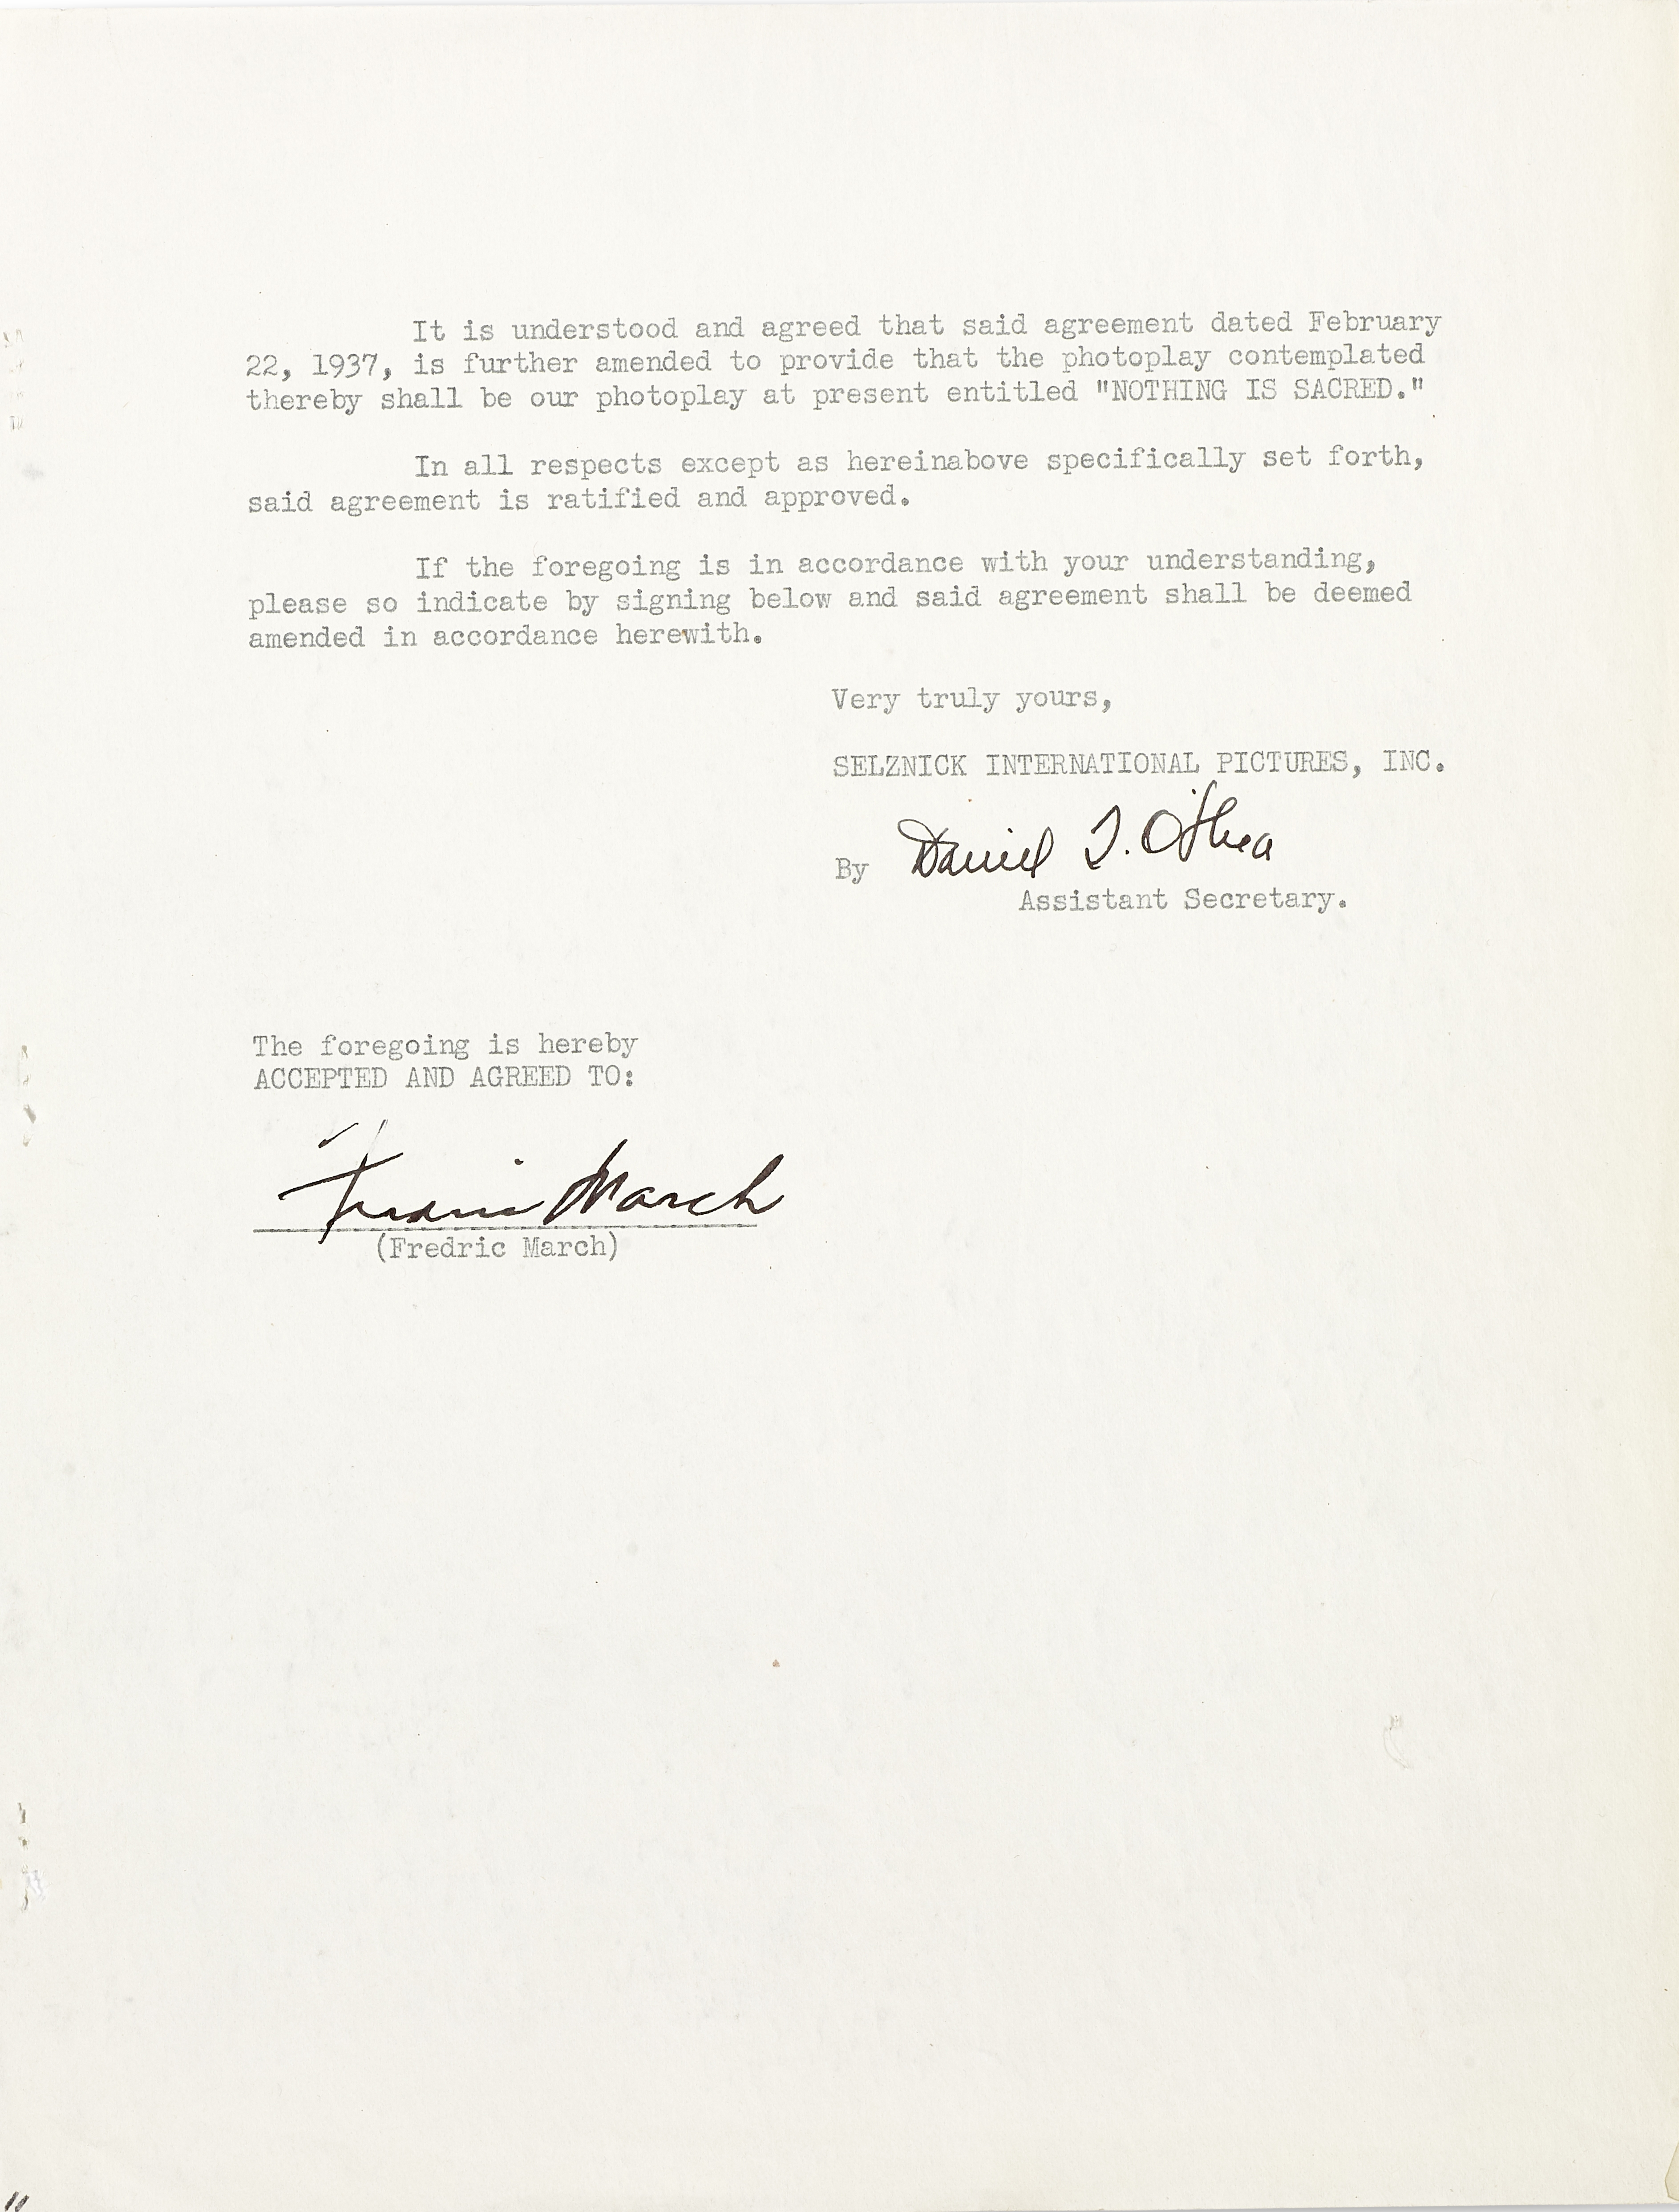 A Fredric March signed contract